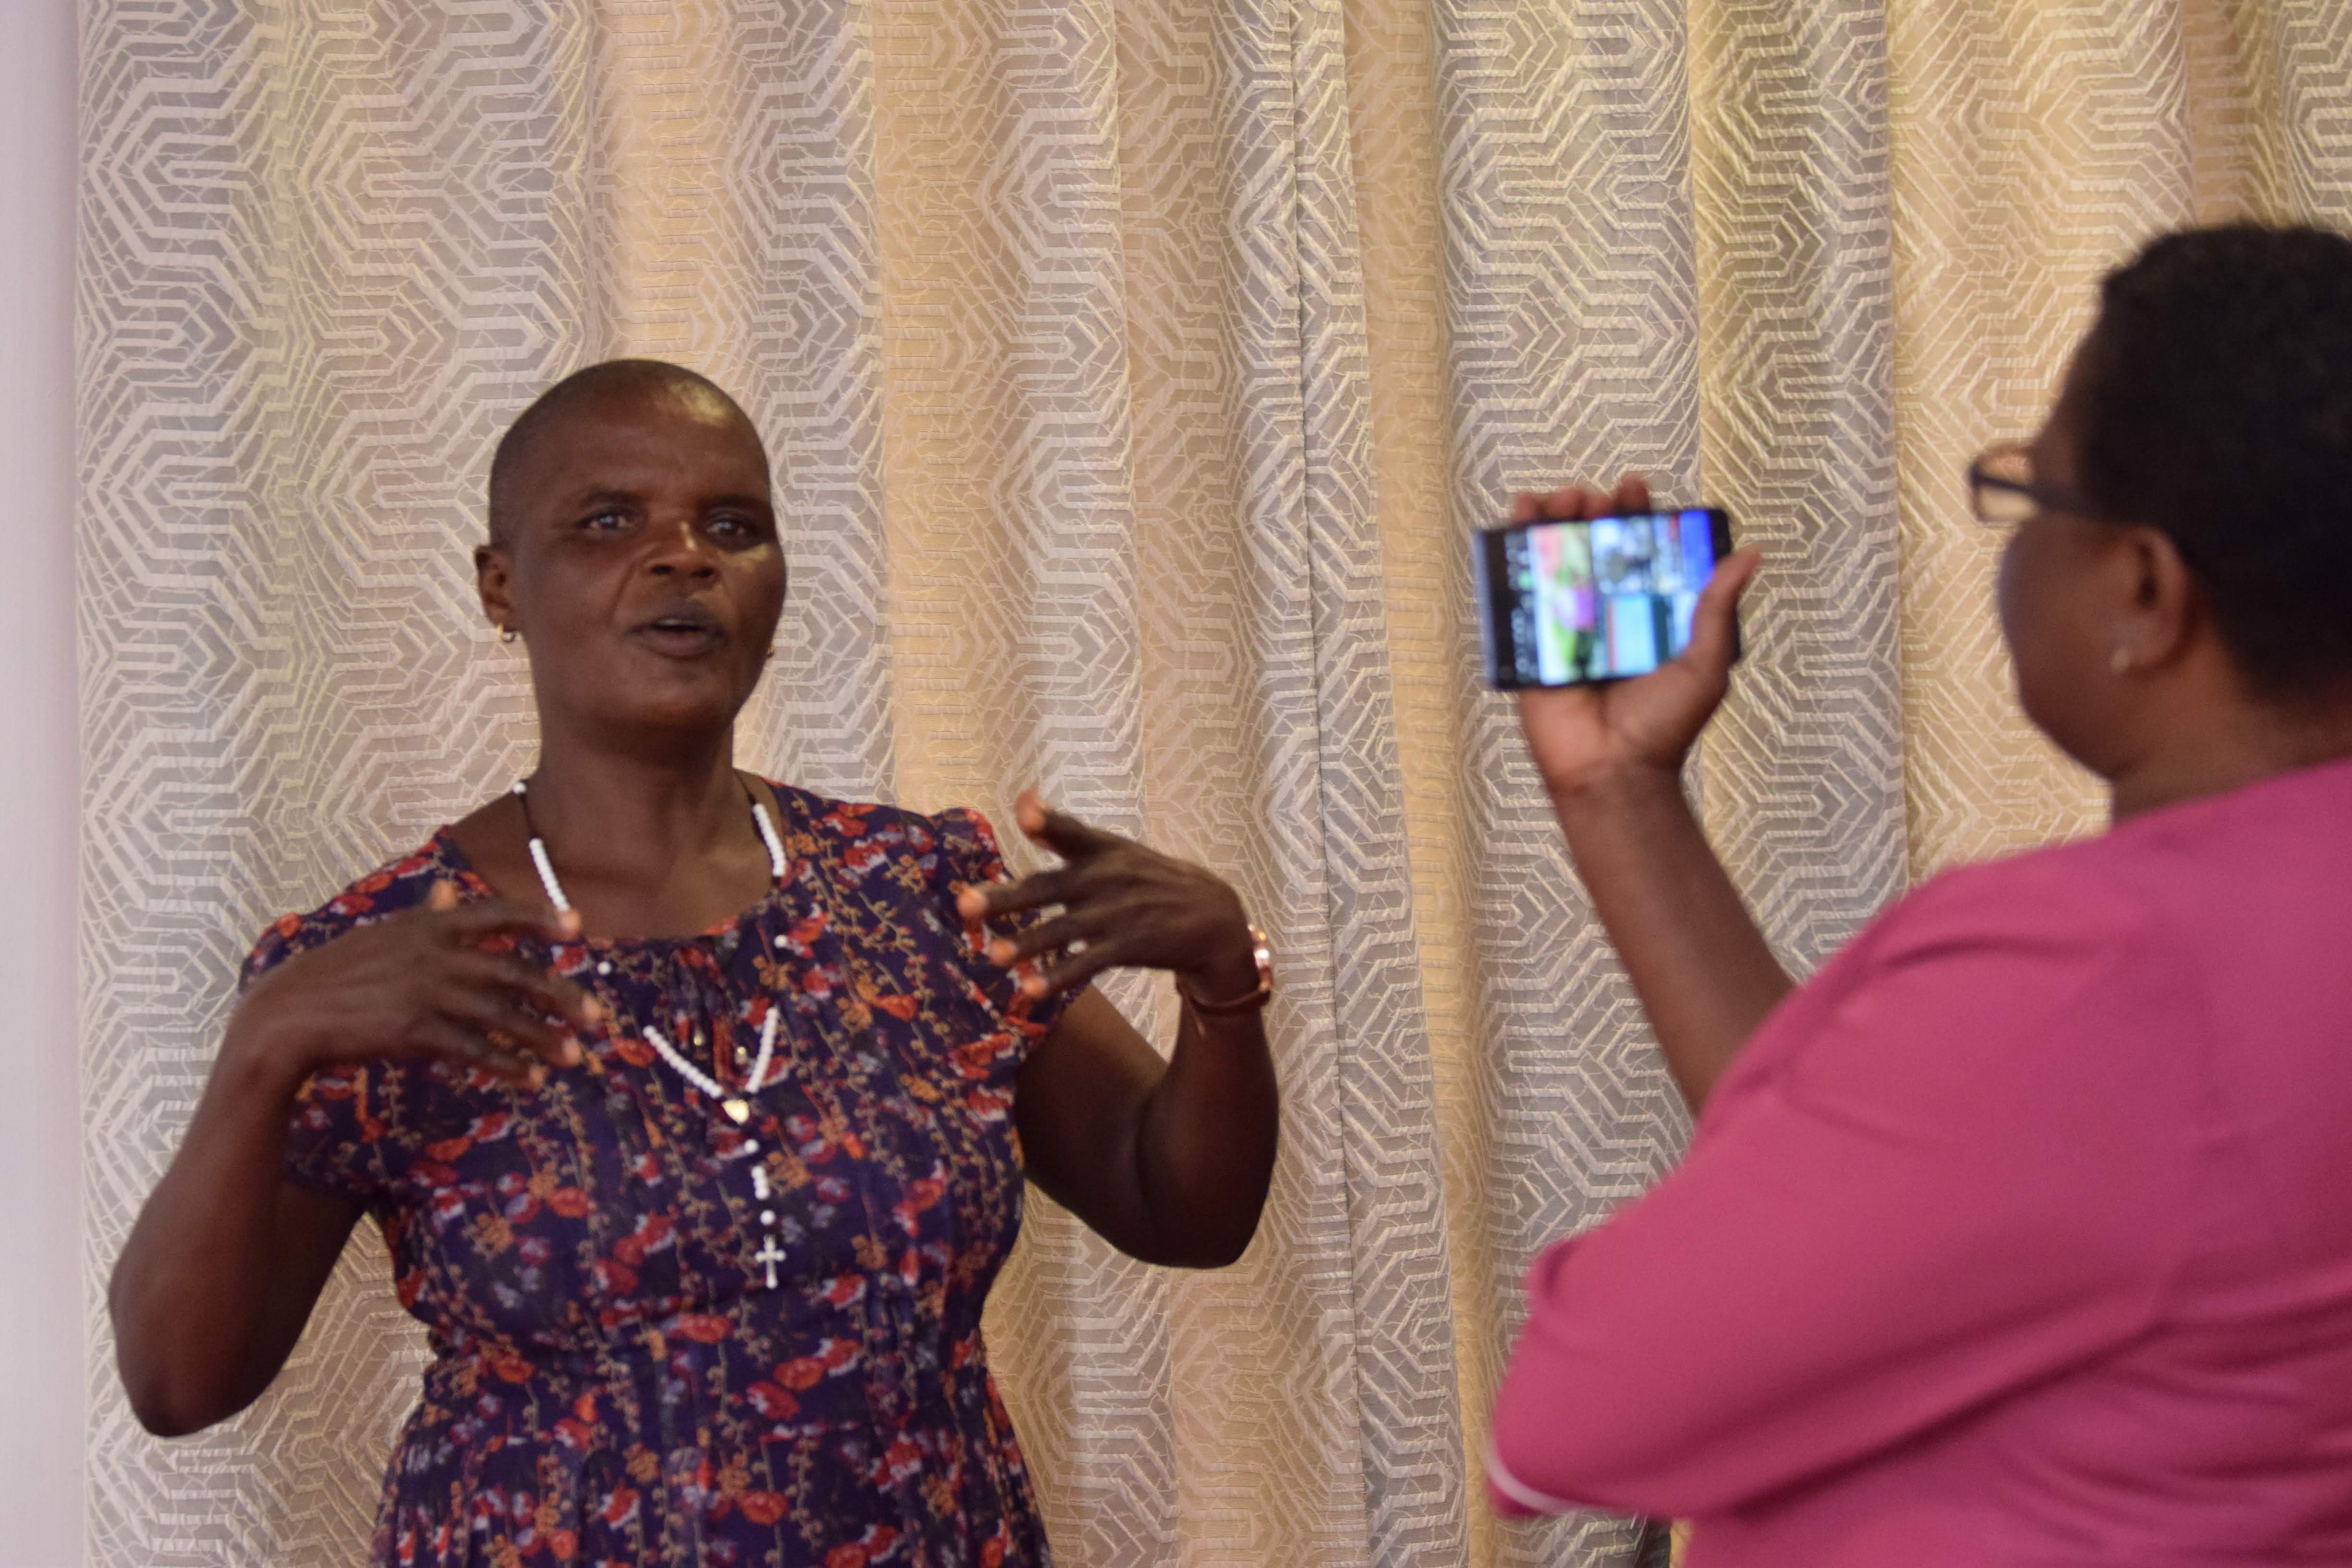 Jessica Kwete and Susy Musungu learning on how to use smart Phoee to record good quality videos and photos for advocacy